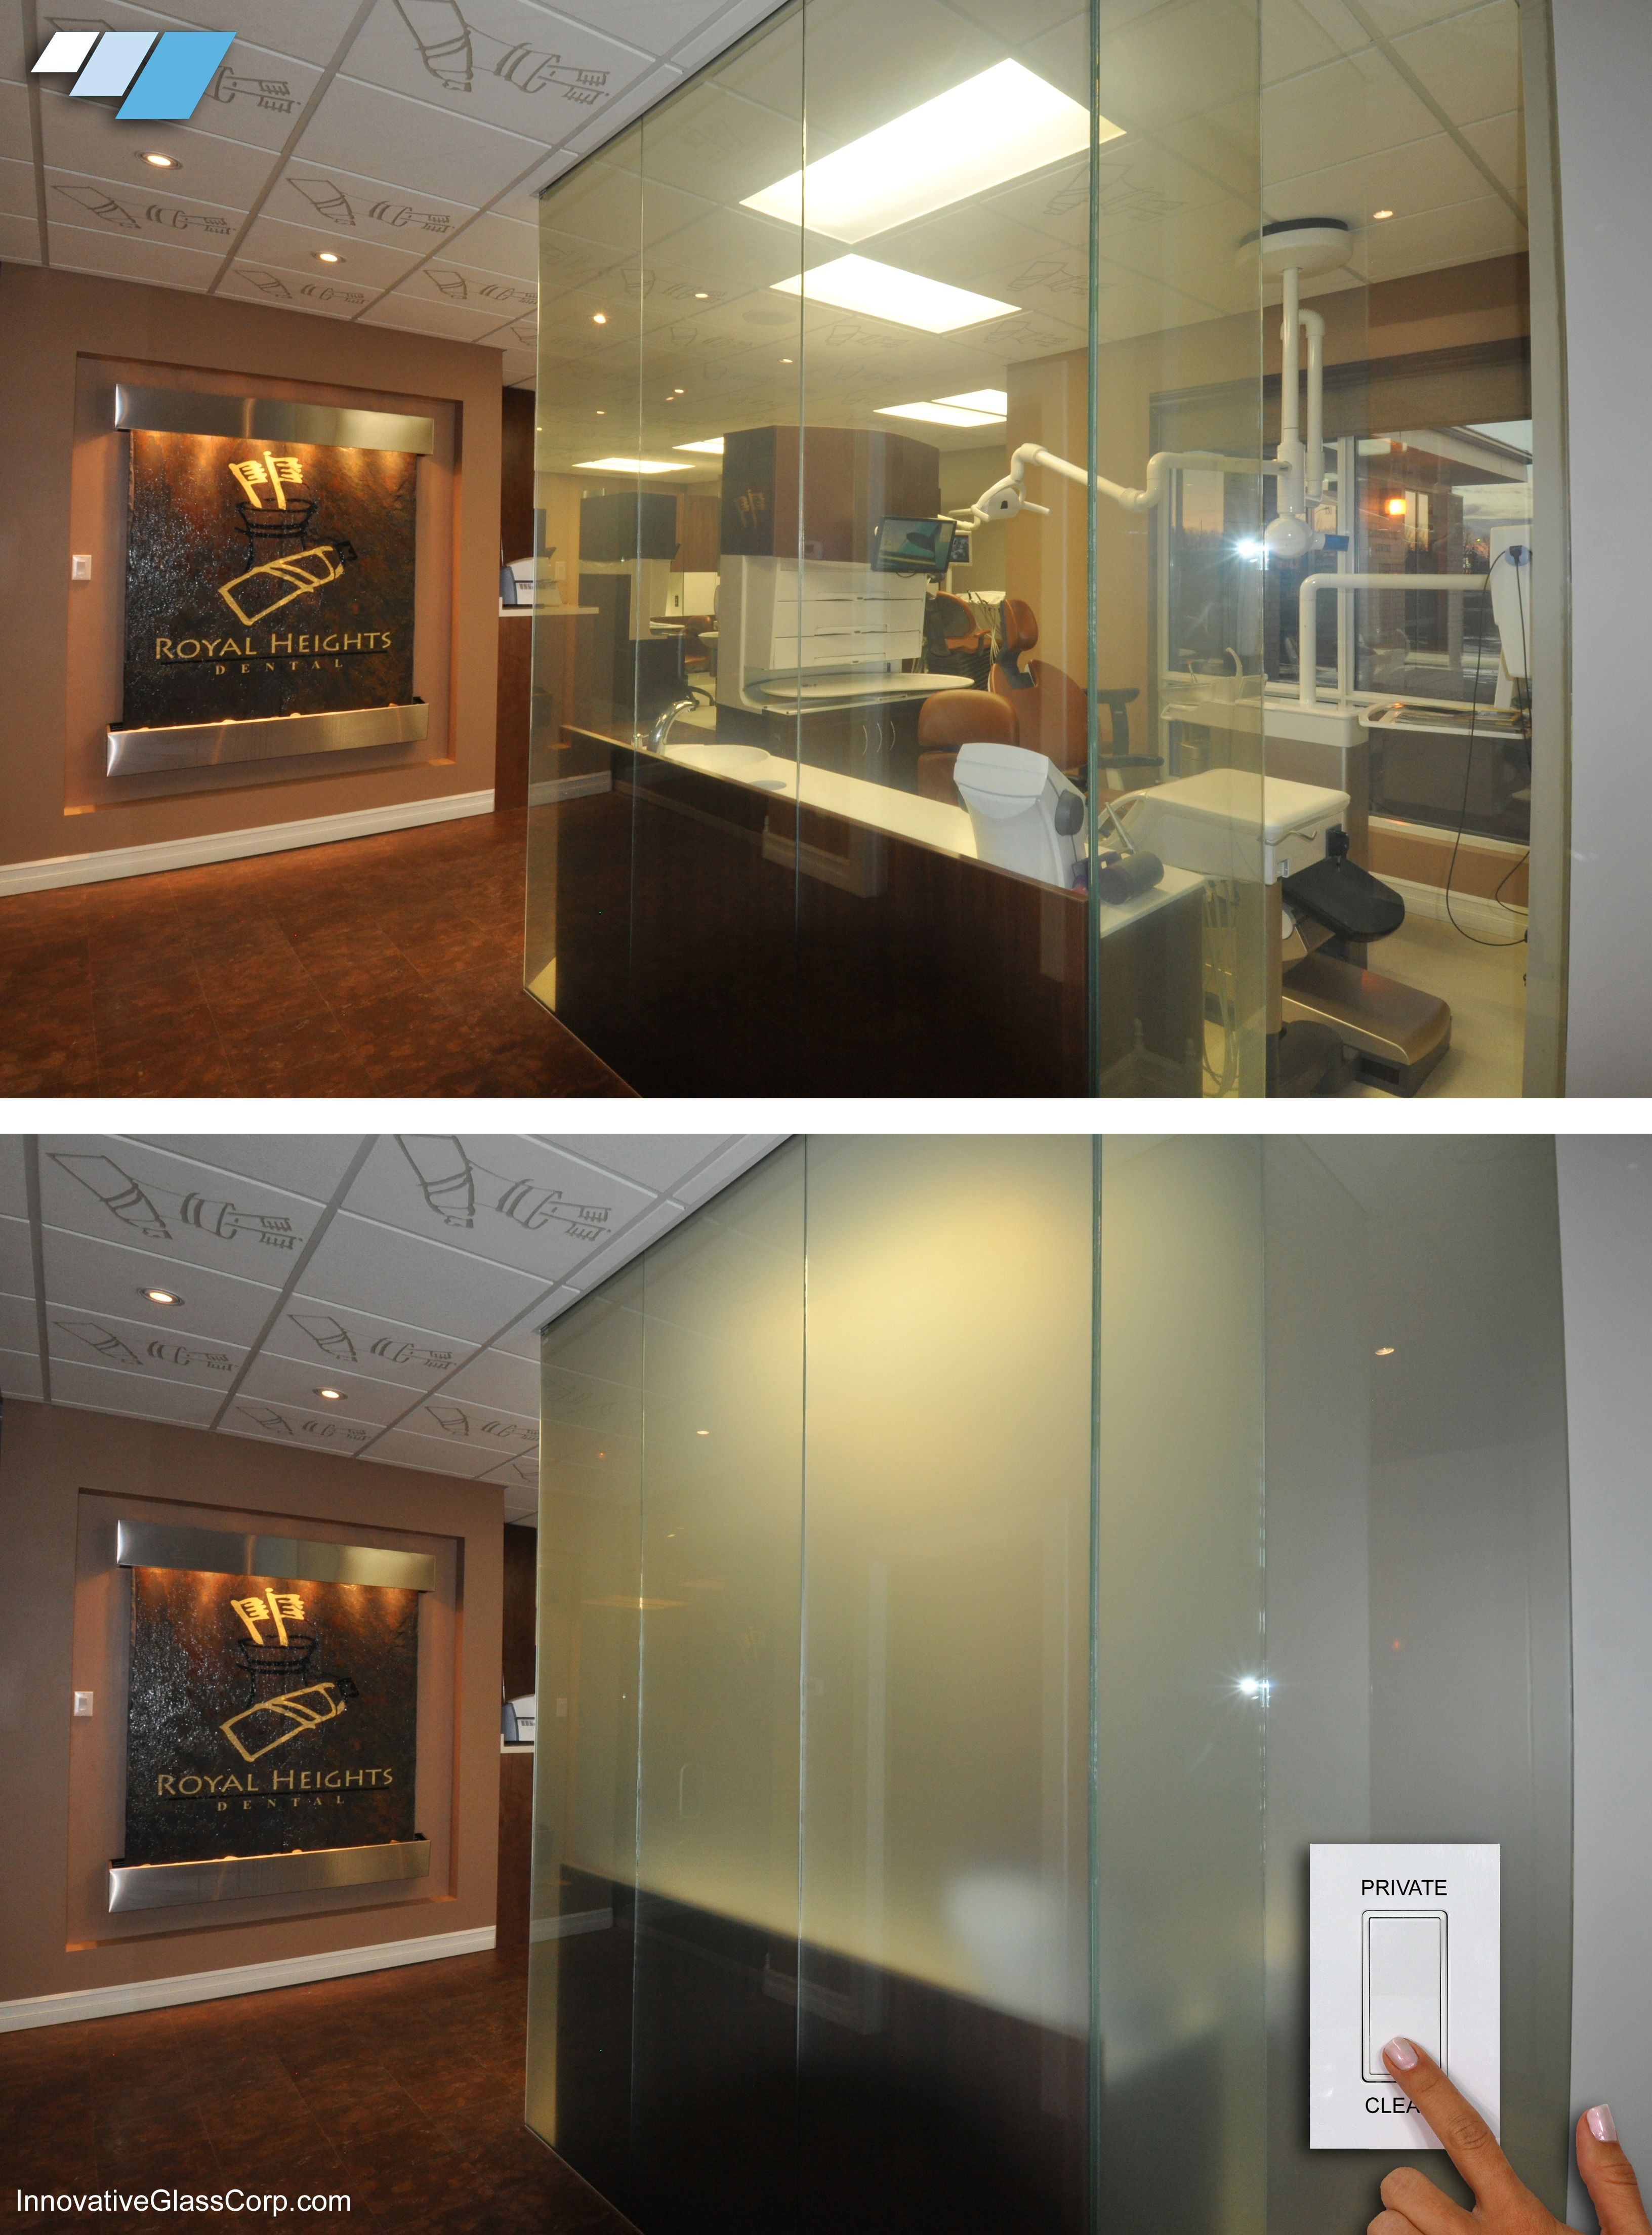 used office room dividers. Switchable Glass Room Dividers For Dental Office When The Rooms Are Not Being Used, Used